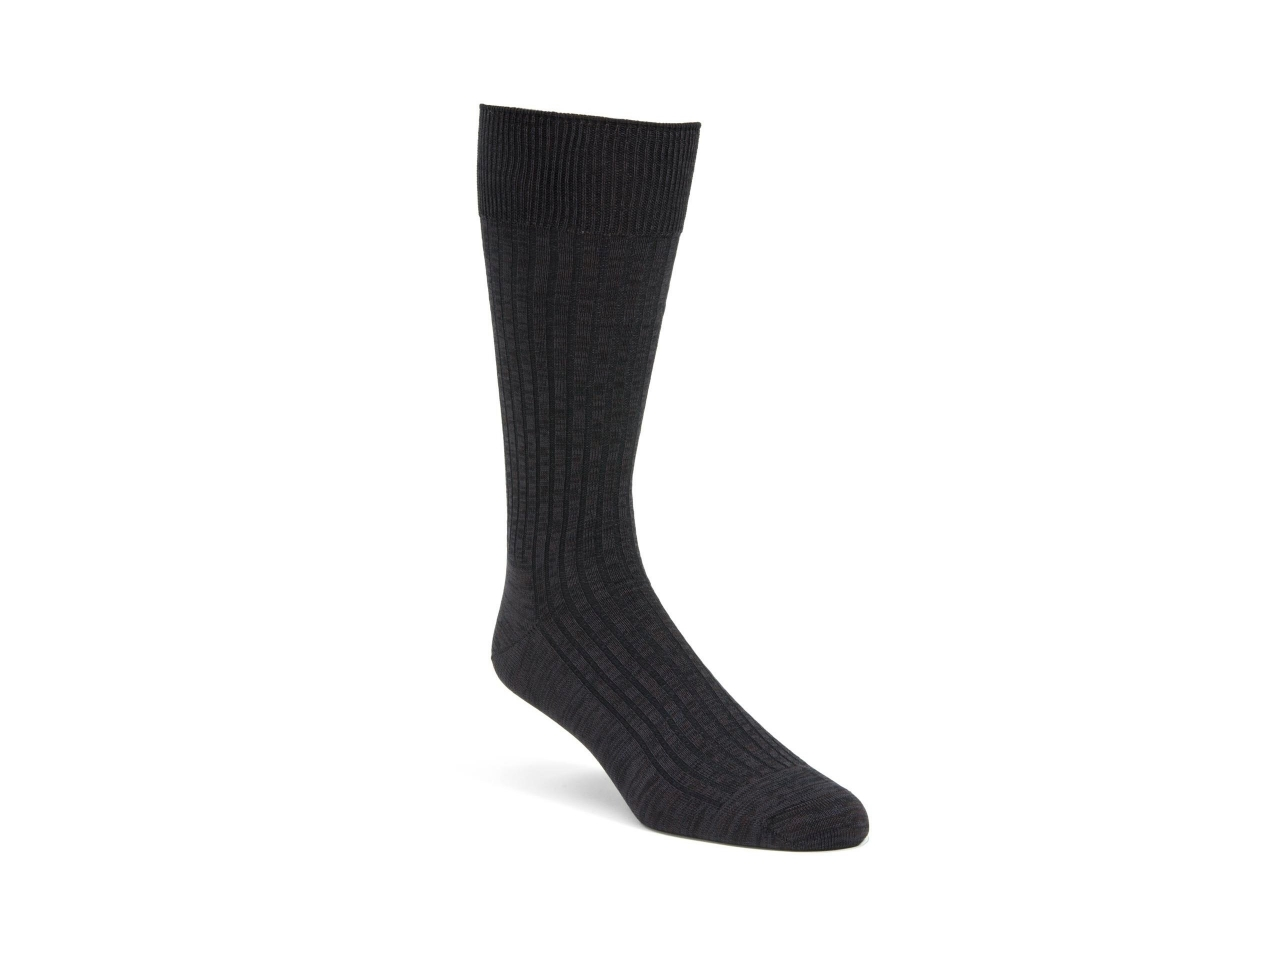 A view of the Casual Dress Sock